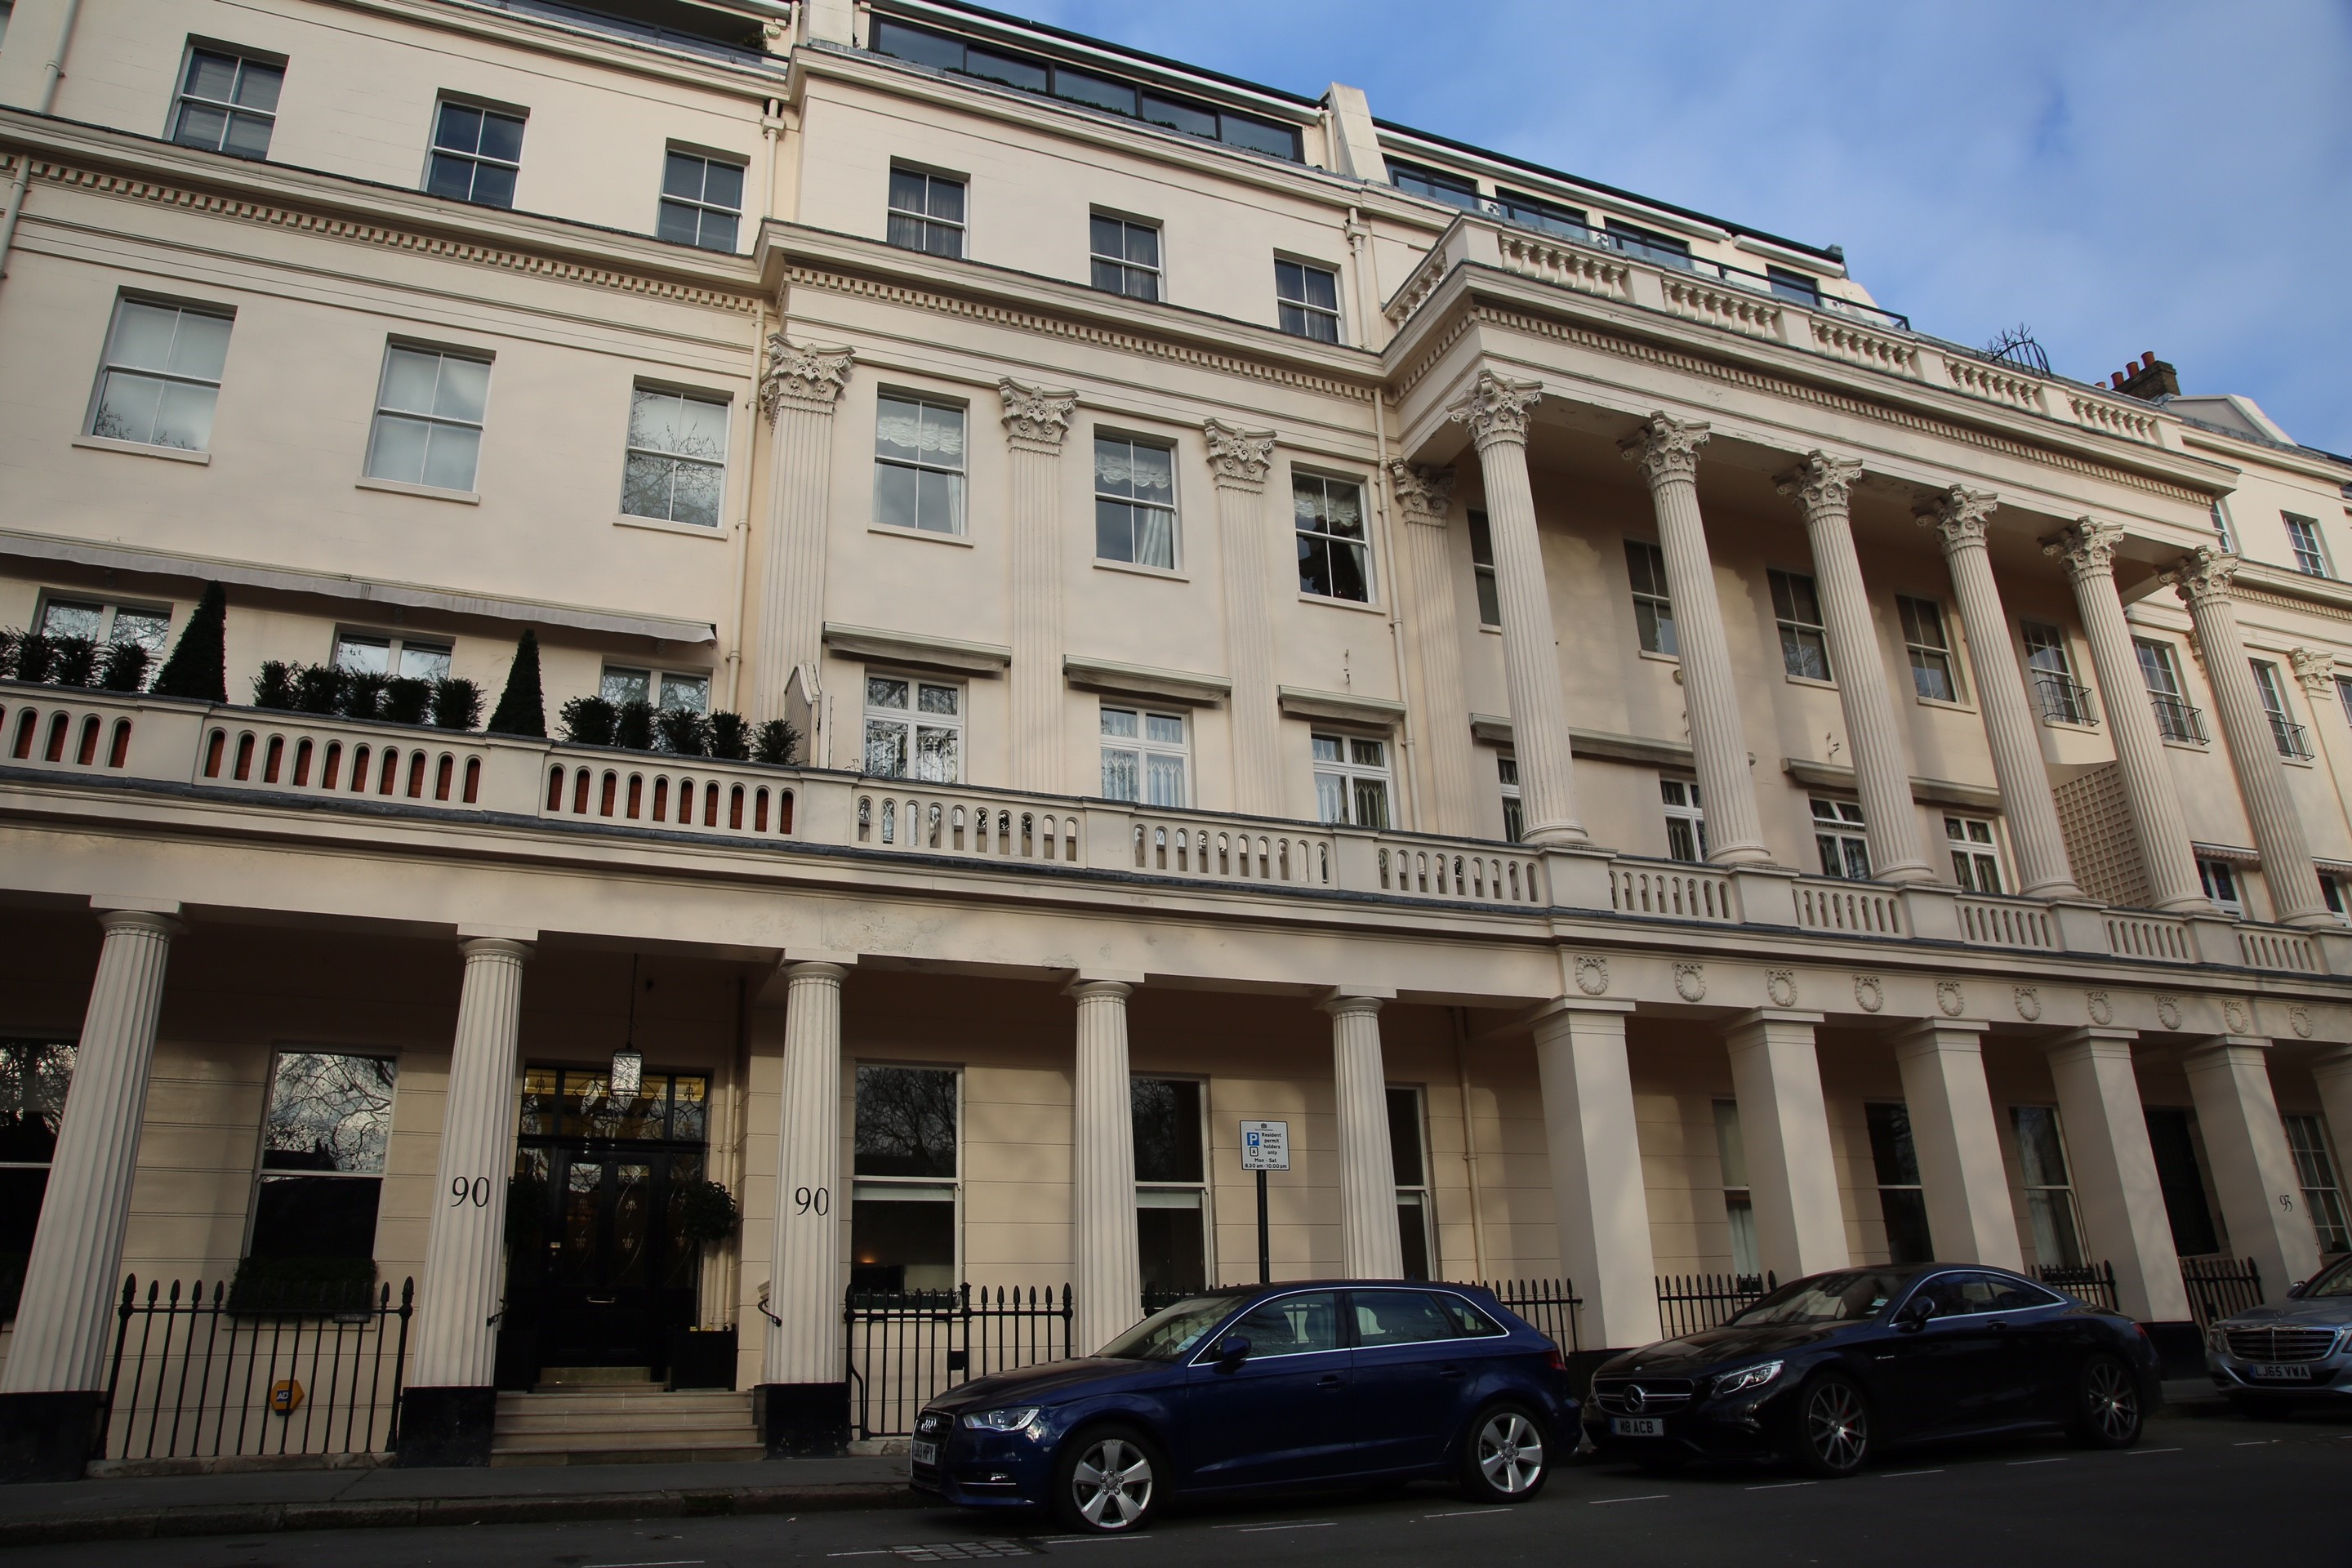 Appartement pour l Vente à Eaton Square London, Angleterre, SW1W9AG Royaume-Uni